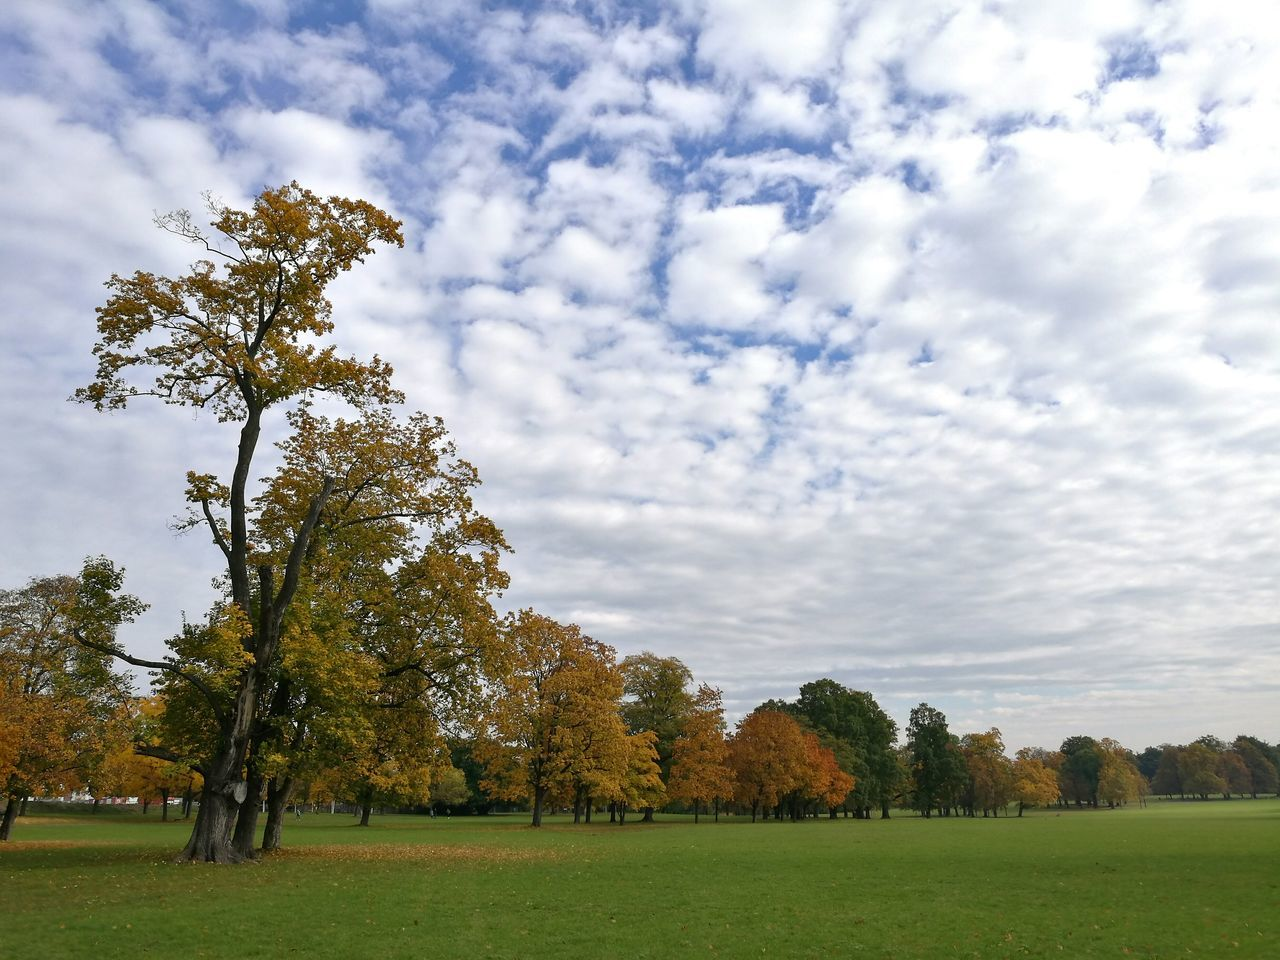 tree, nature, beauty in nature, tranquility, sky, grass, cloud - sky, tranquil scene, scenics, growth, no people, field, day, landscape, outdoors